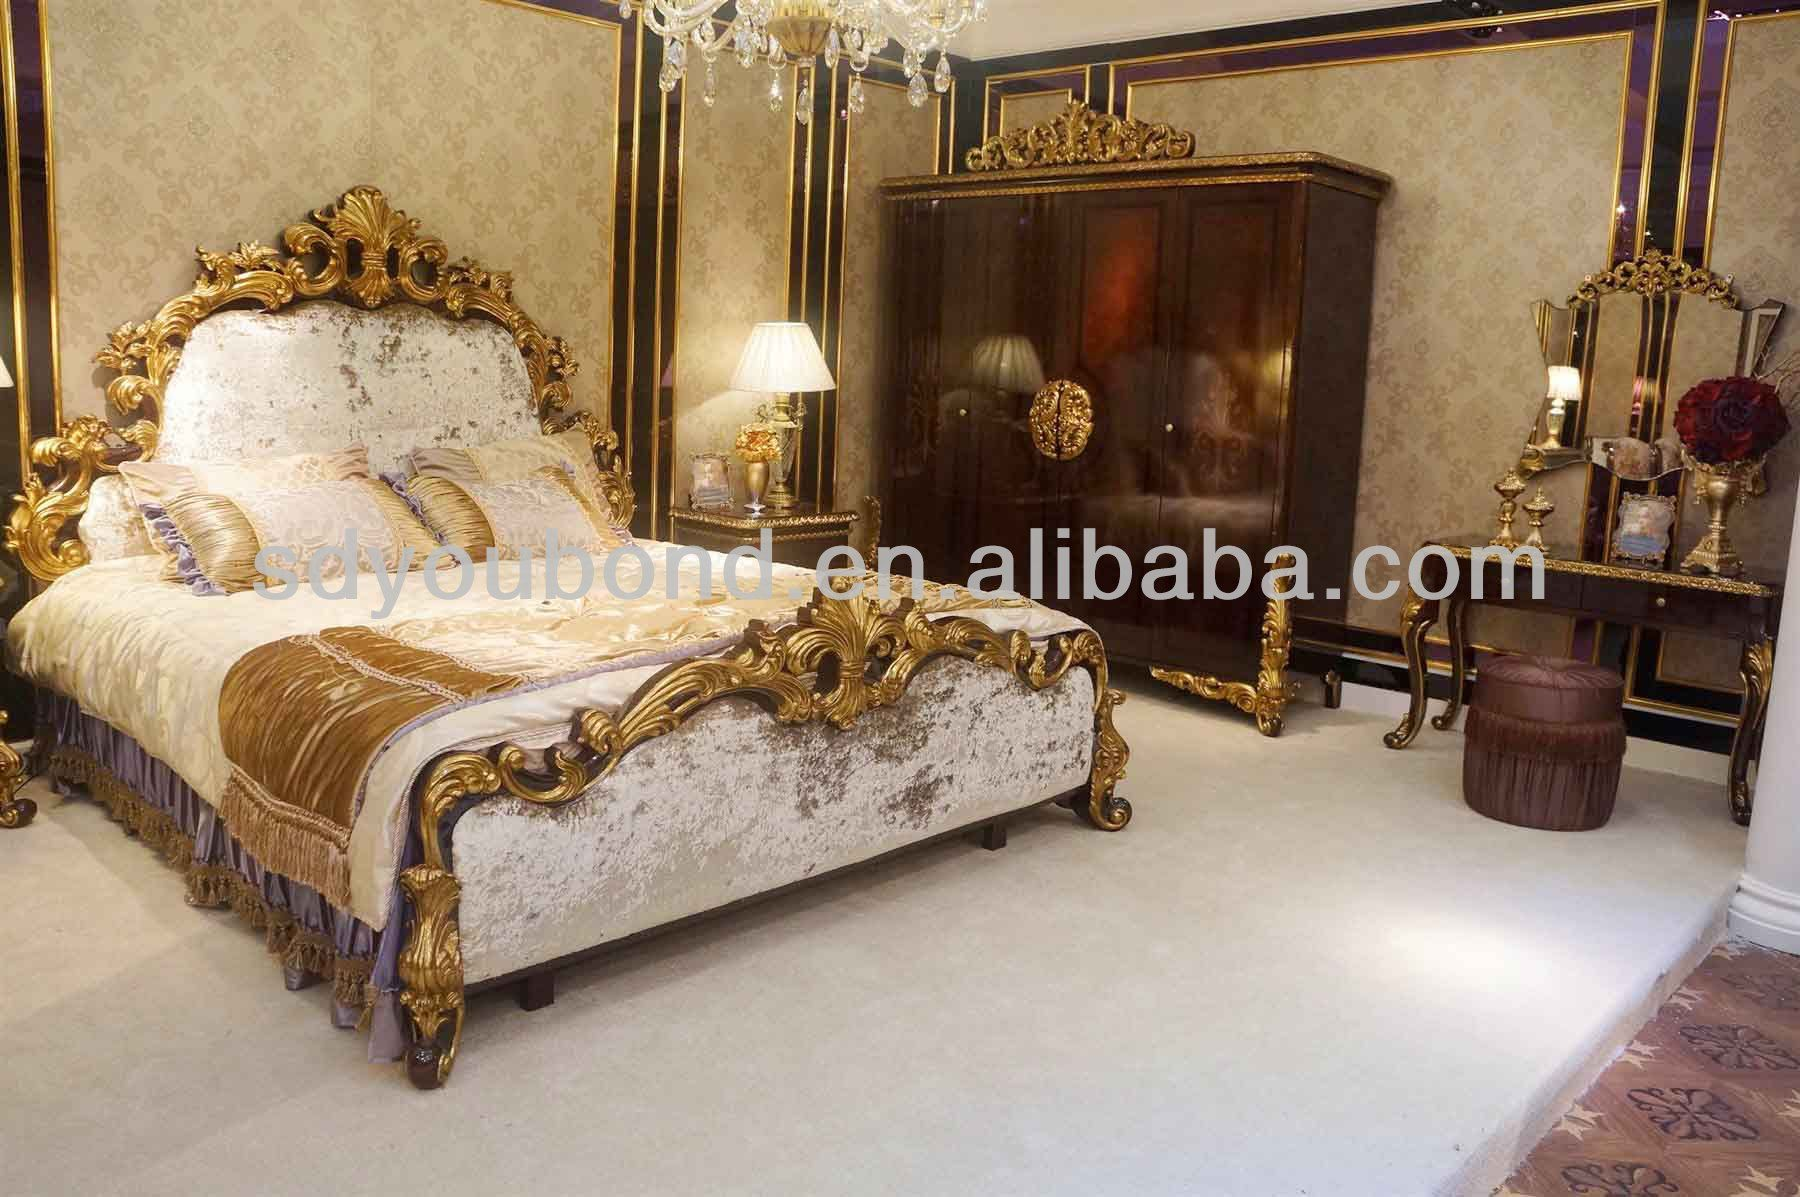 Classic european bedroom furniture - 0063 High End Middle East Royal Palace Funiture Wooden Carved Classic Luxury Home Furniture